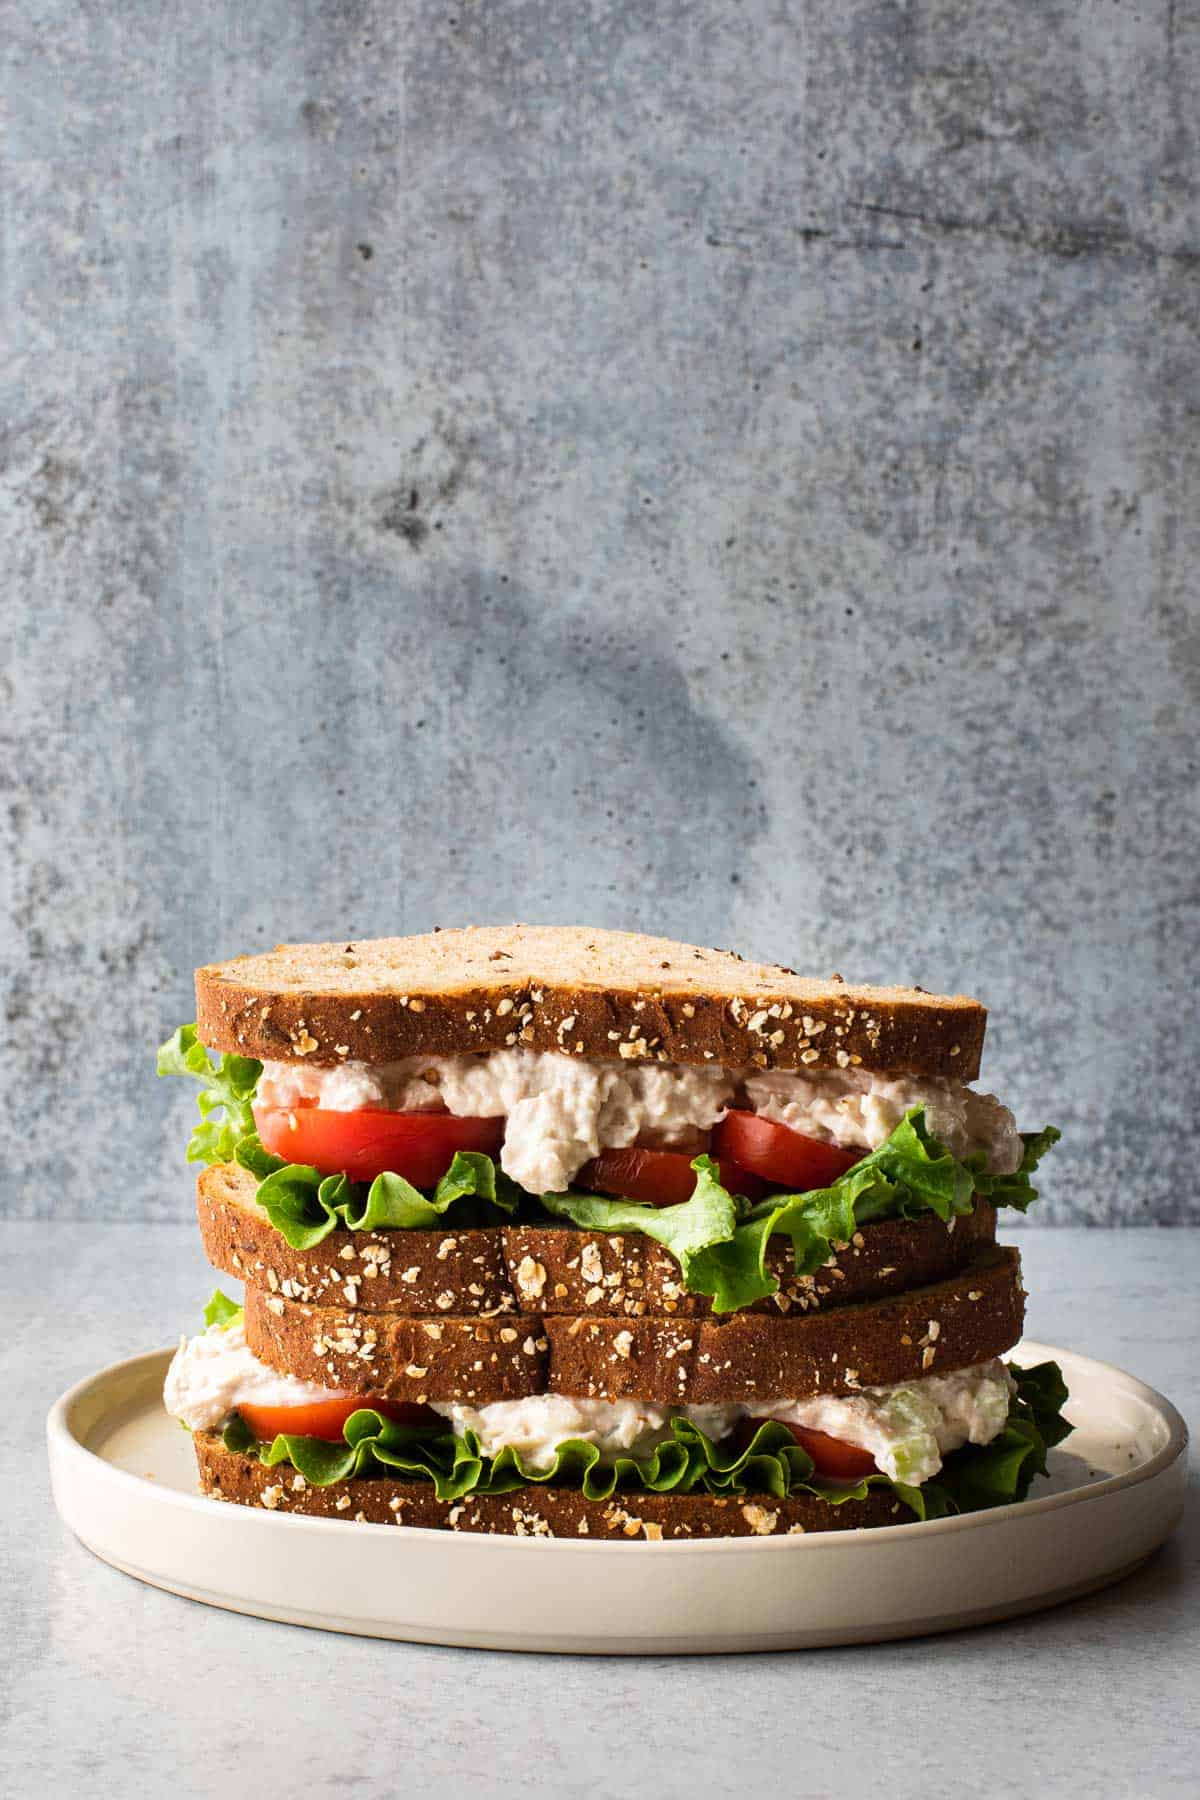 two sandwiches stacked on top of each other on a white plate with a gray background